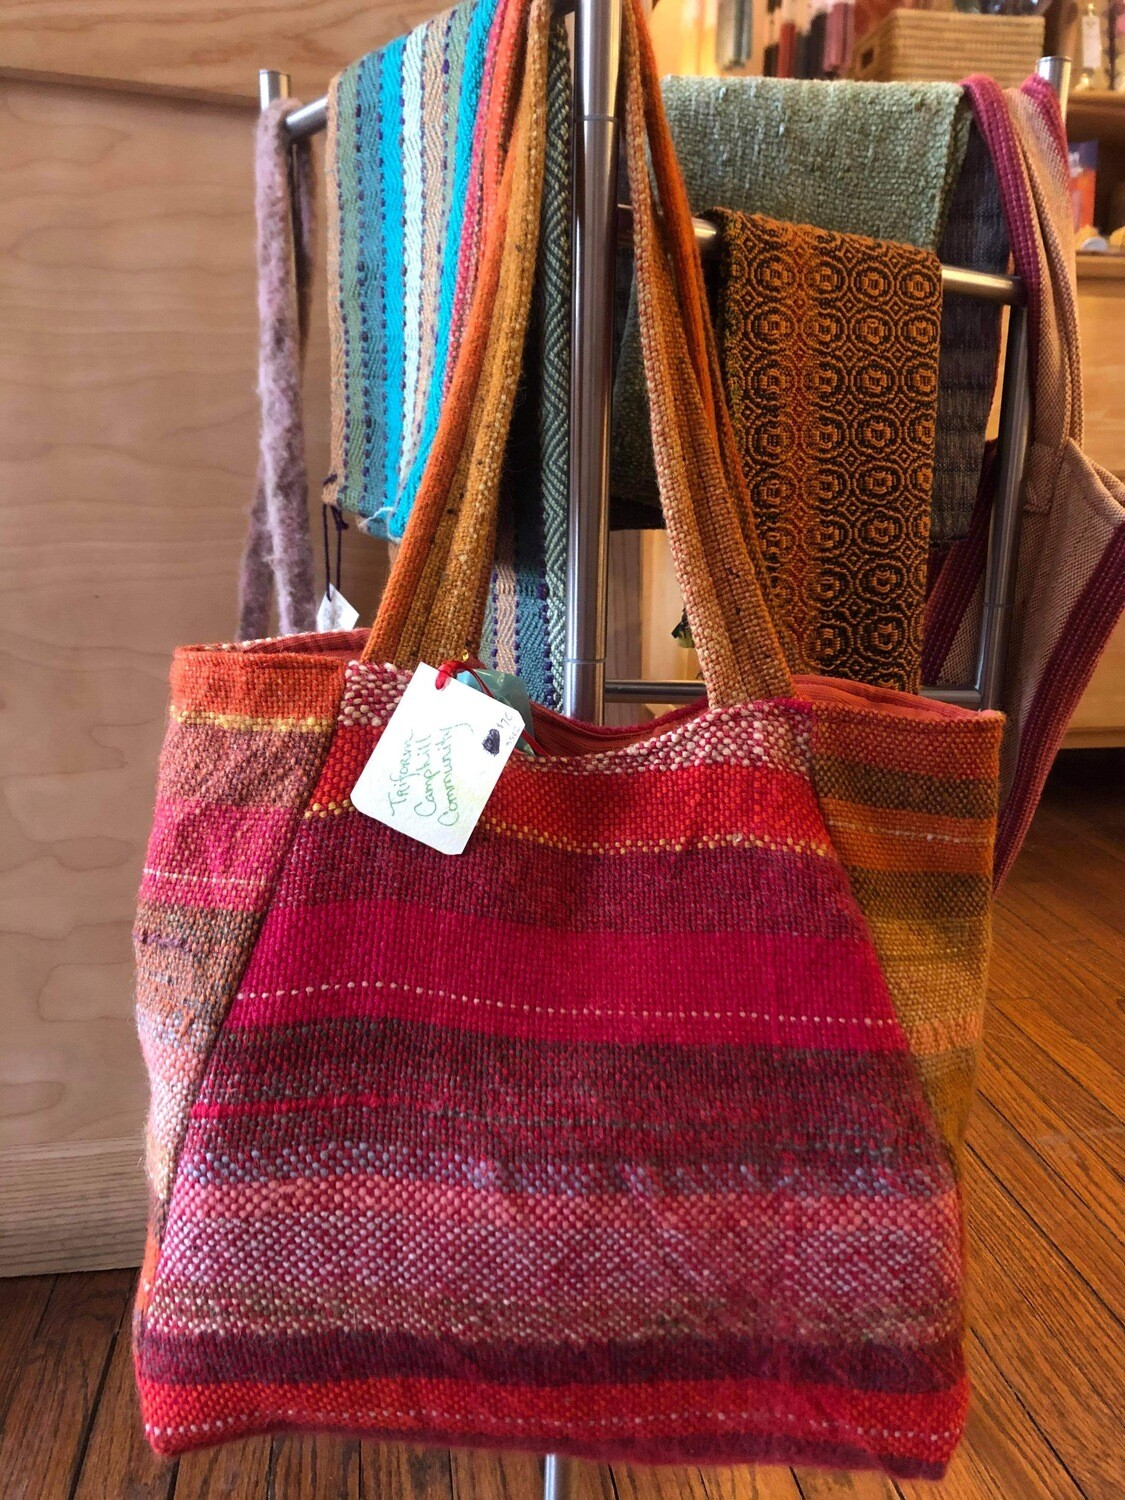 Woven lined bag - 3502